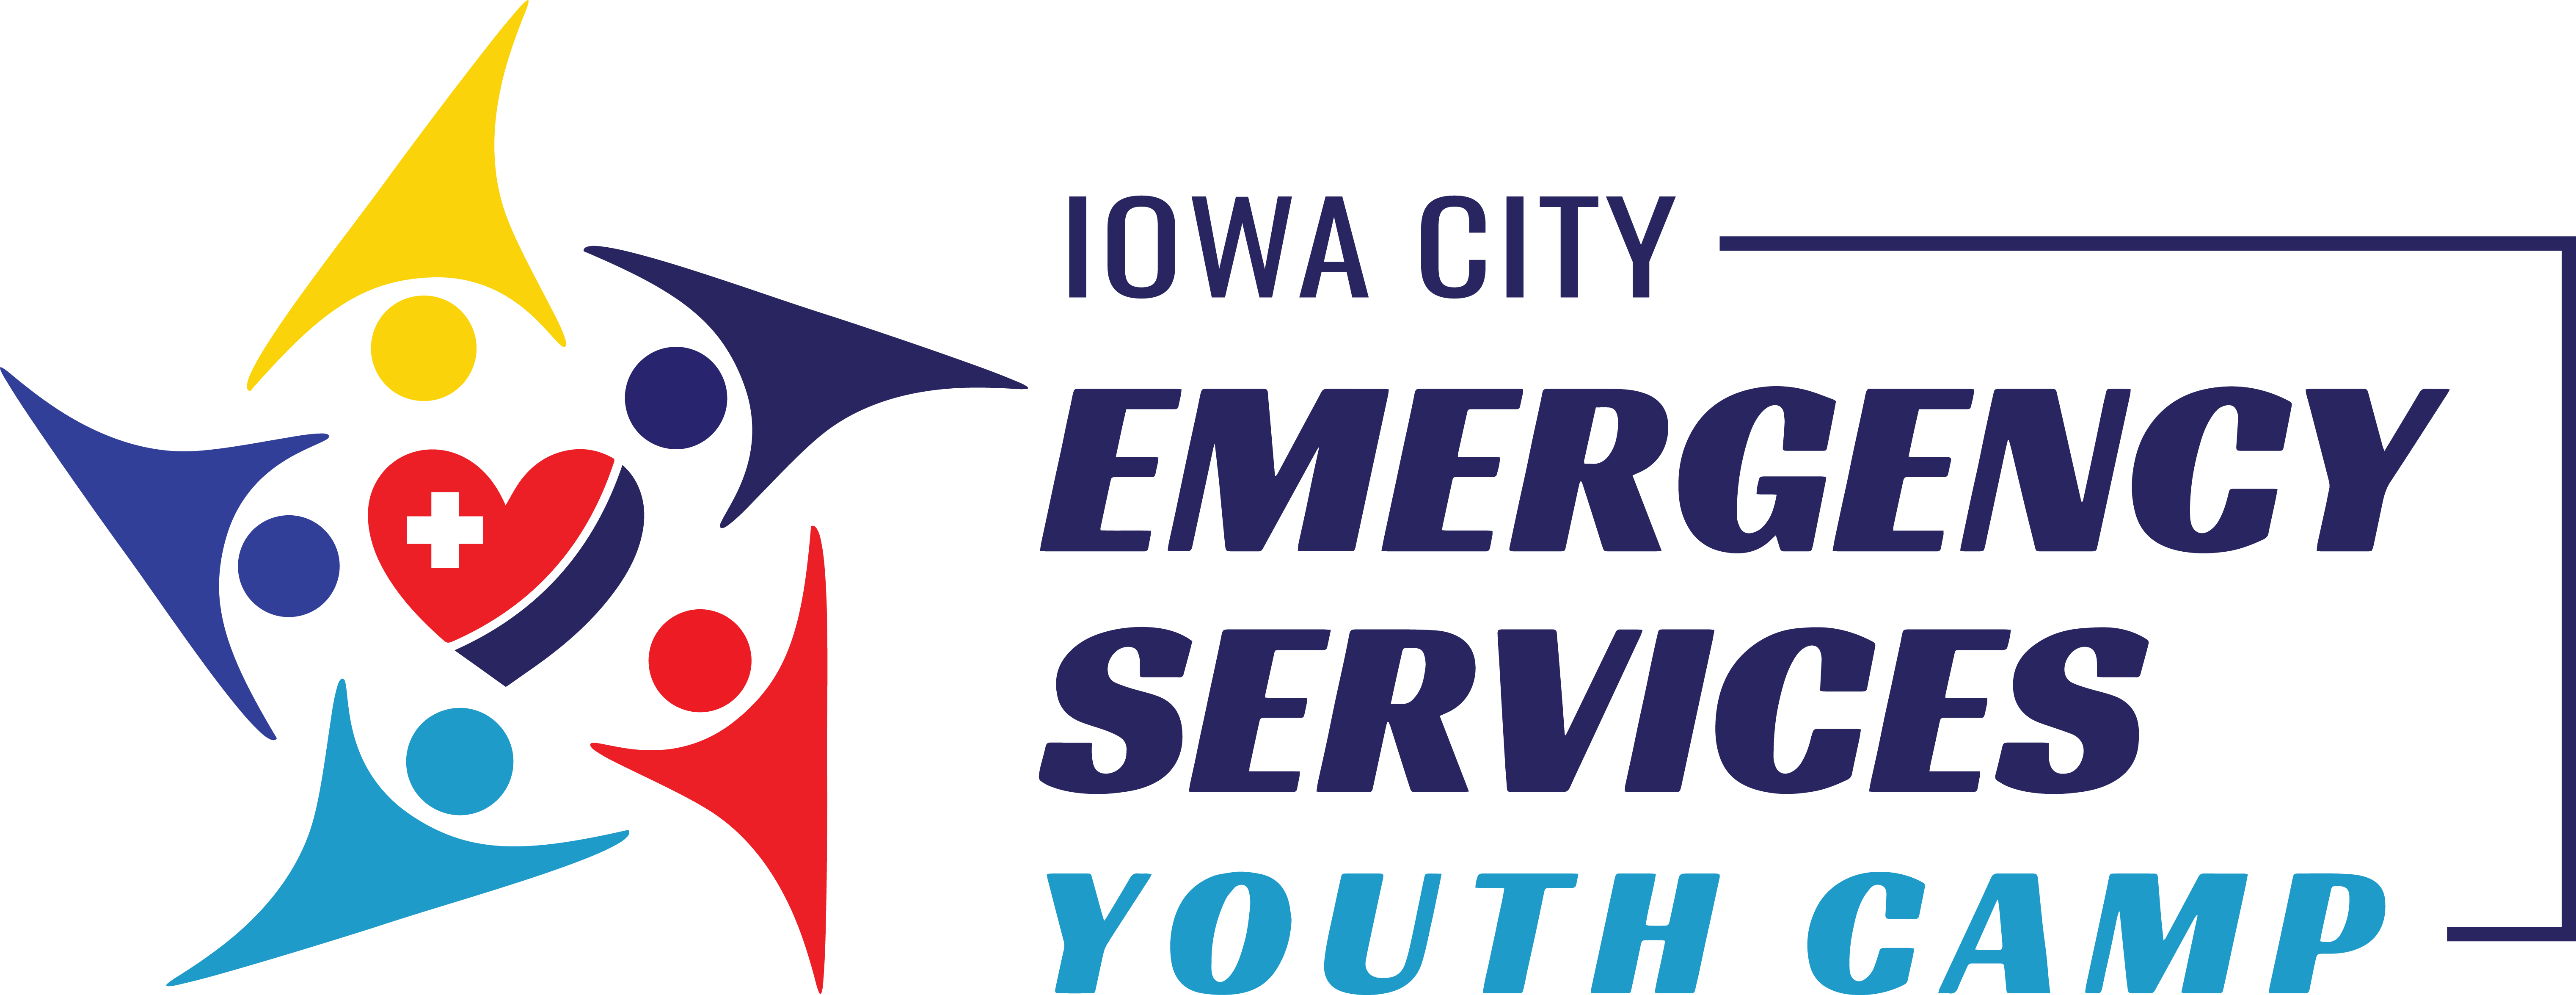 The logo for the Emergency Services Youth Camps